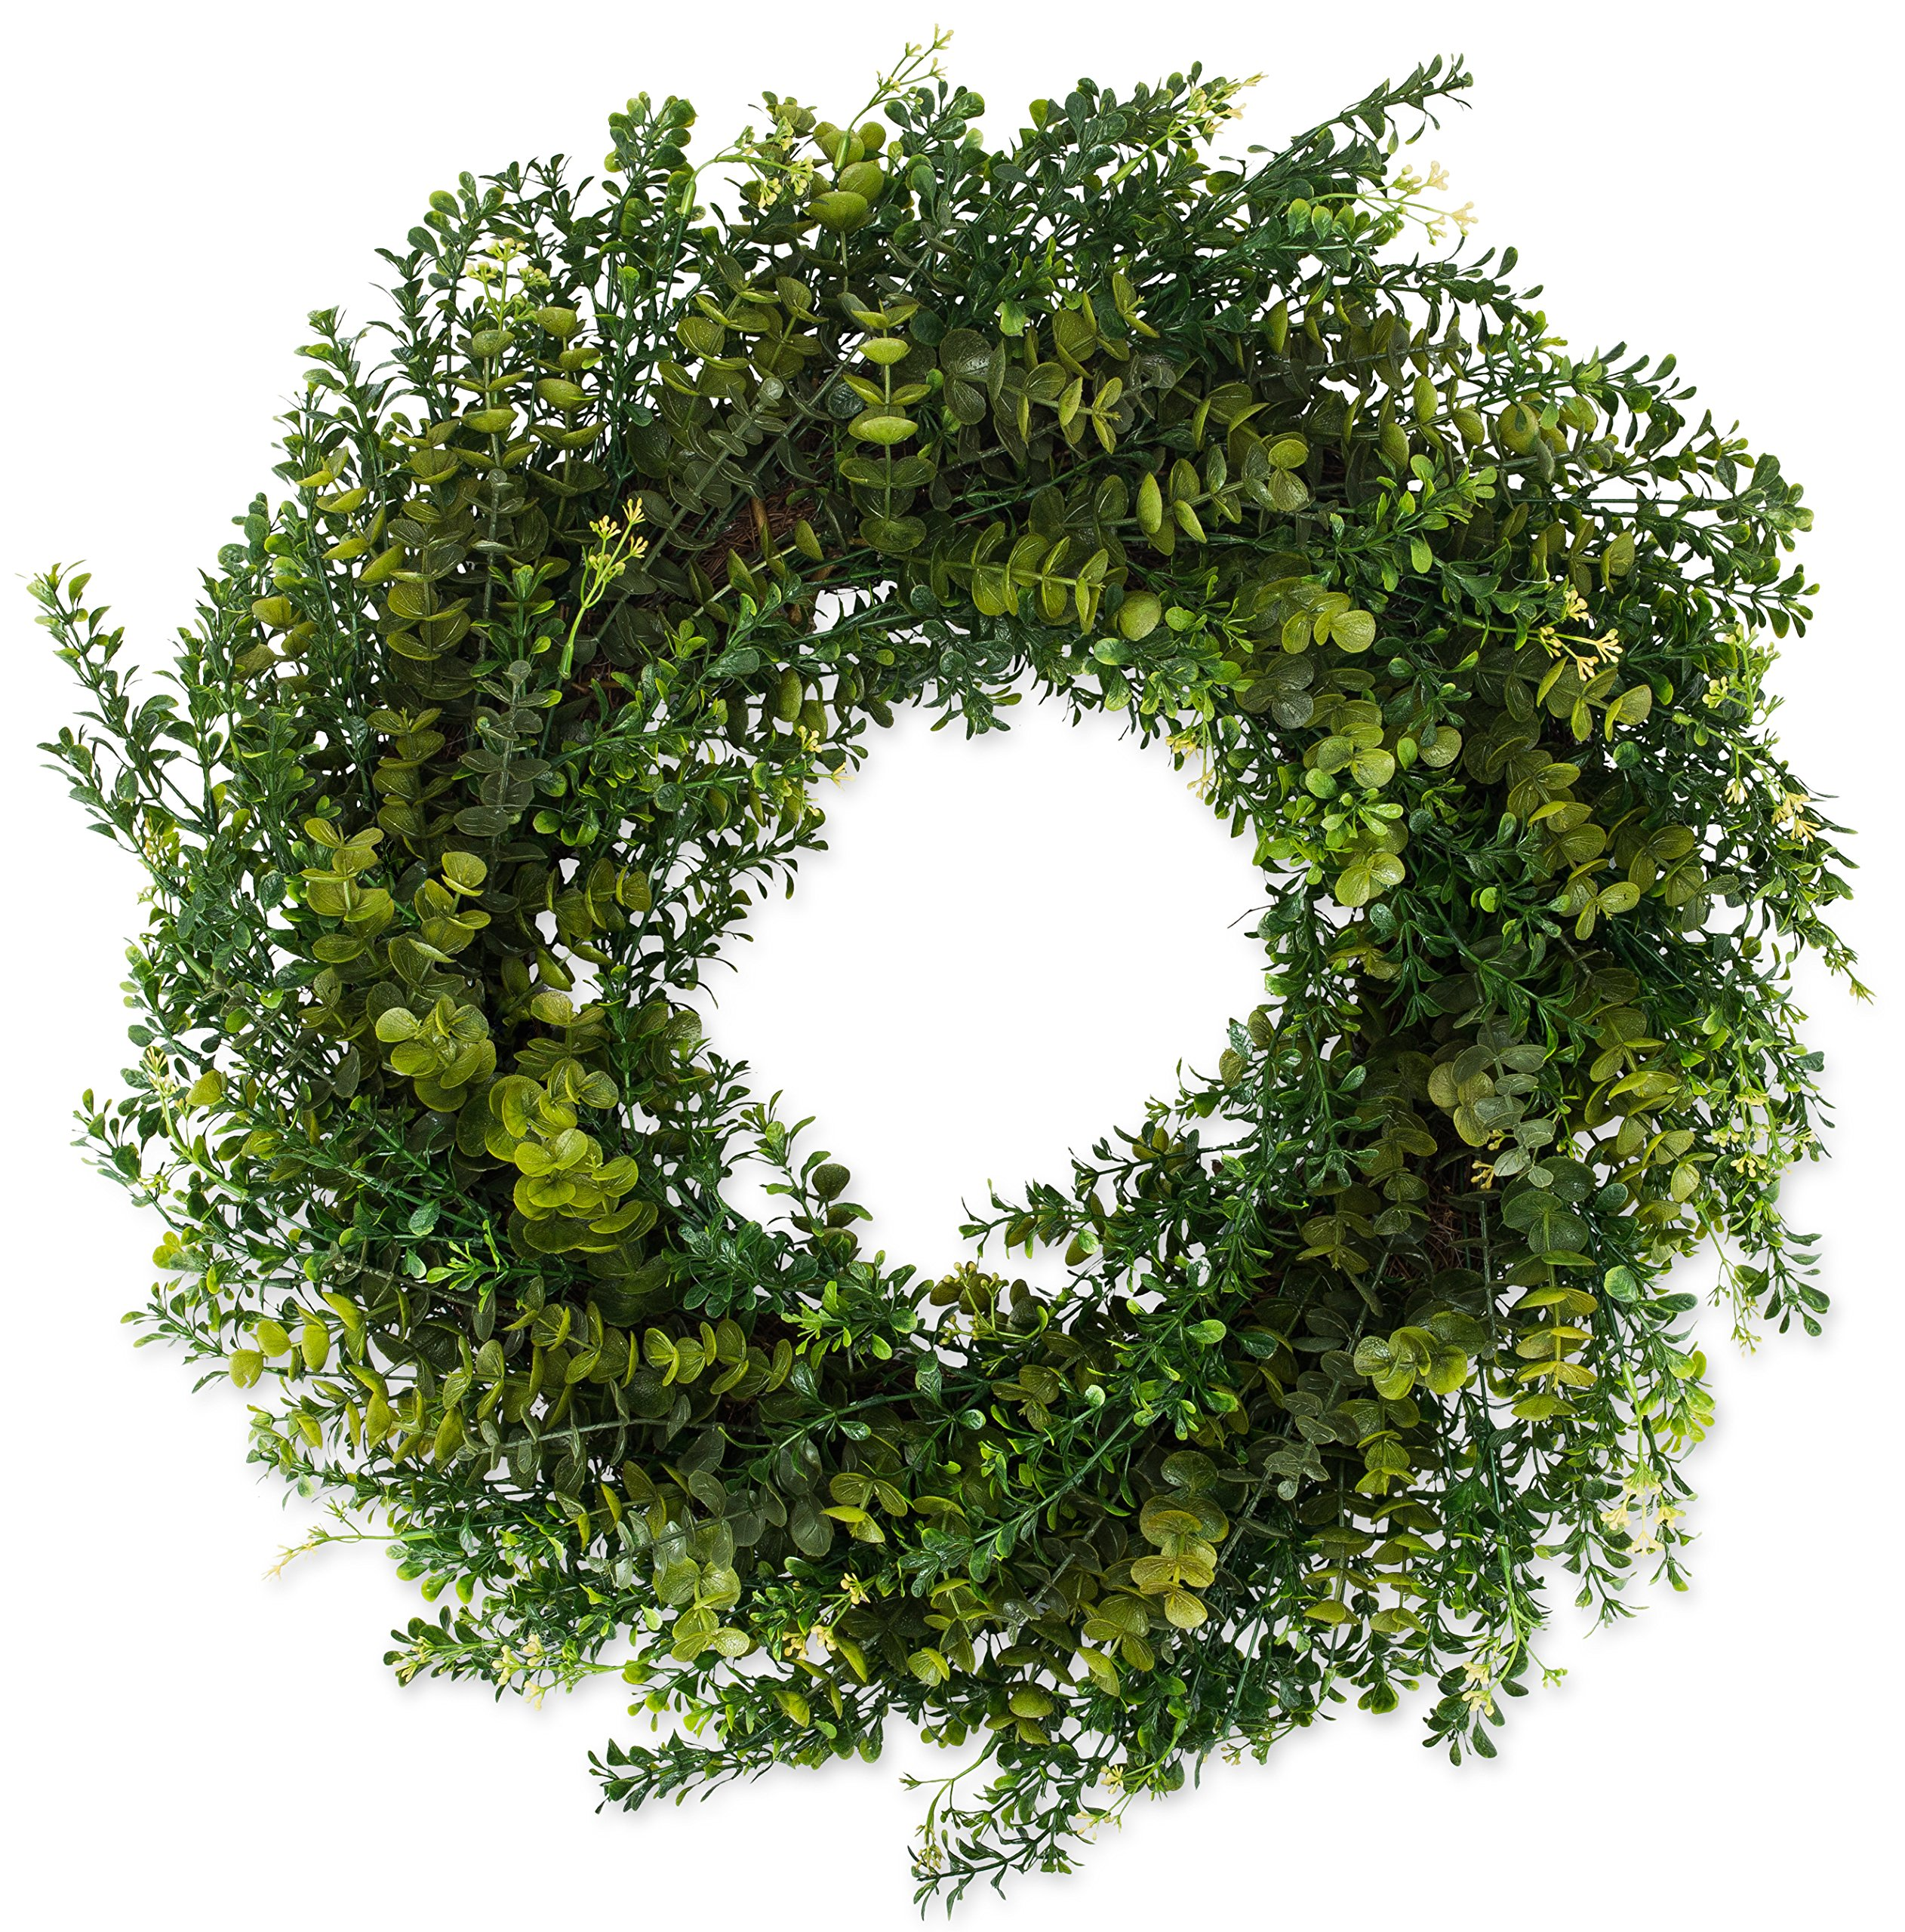 The Wreath Depot Arbor Artificial Boxwood Wreath 22 Inch, Year Round Full Green Wreath, Approved for Outdoor Display, Beautiful Gift Box Included by The Wreath Depot